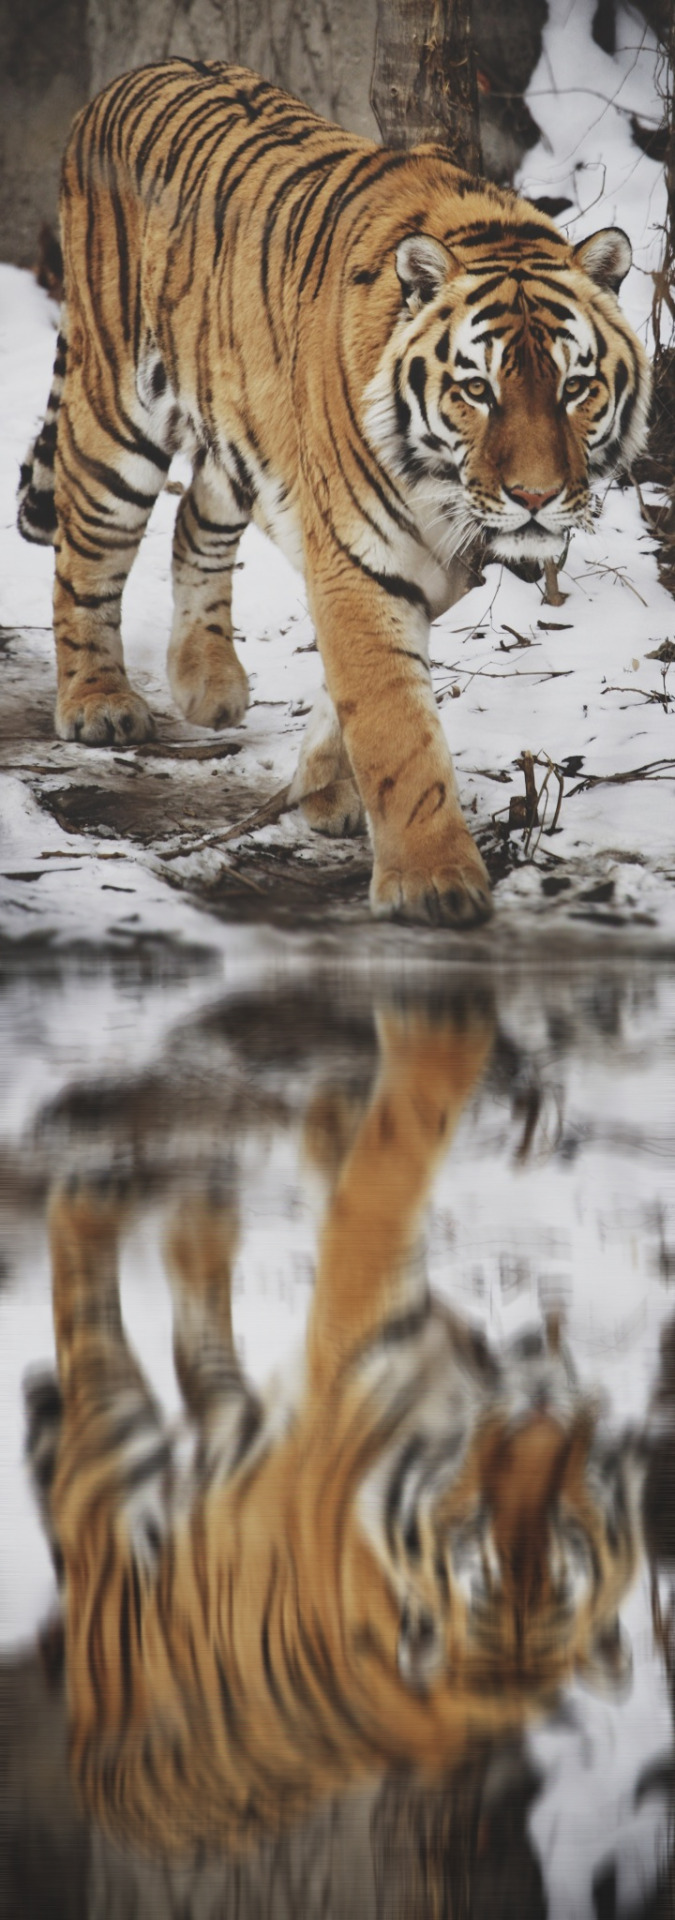 Okay, last tiger reflection, I think this one looks more natural